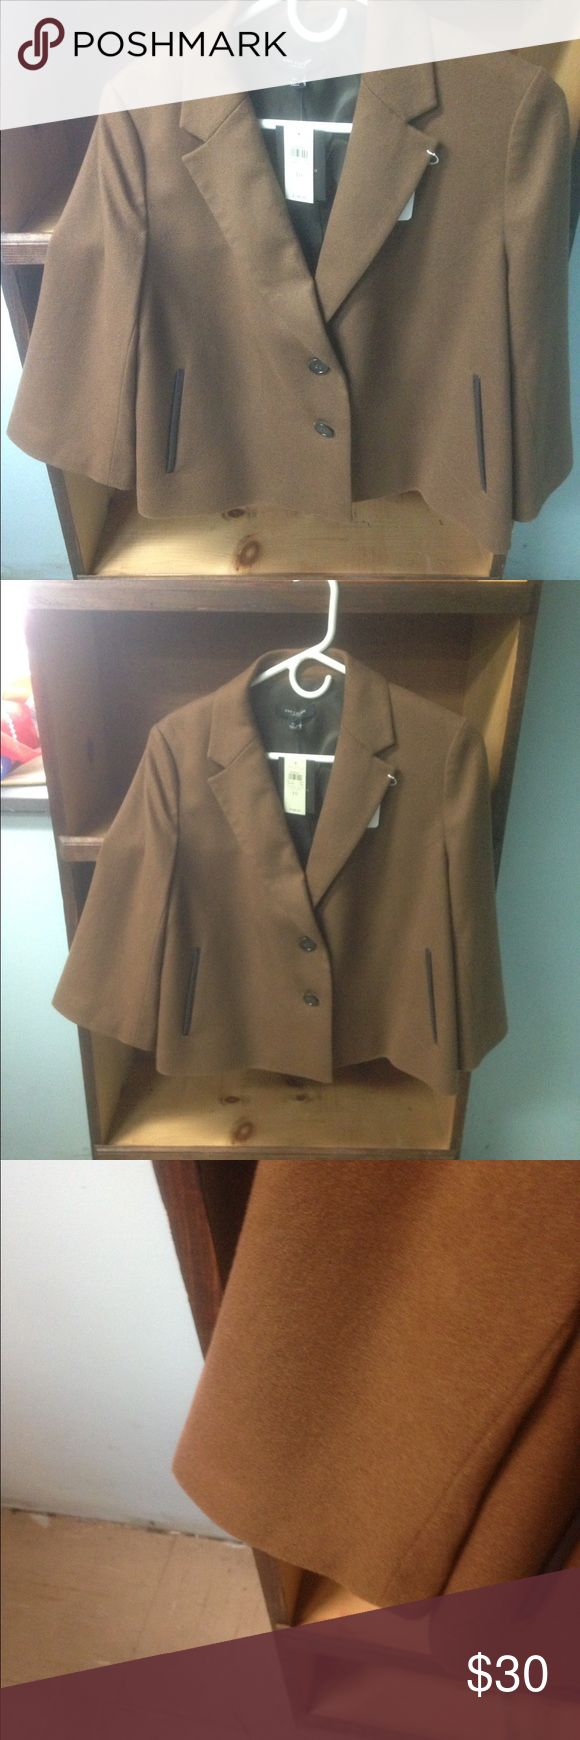 Ann Taylor Blazer NWT Suggested Retail Price 198 Dollars. A Great Stylish  but Classic Jacket. Jackets & Coats Blazers